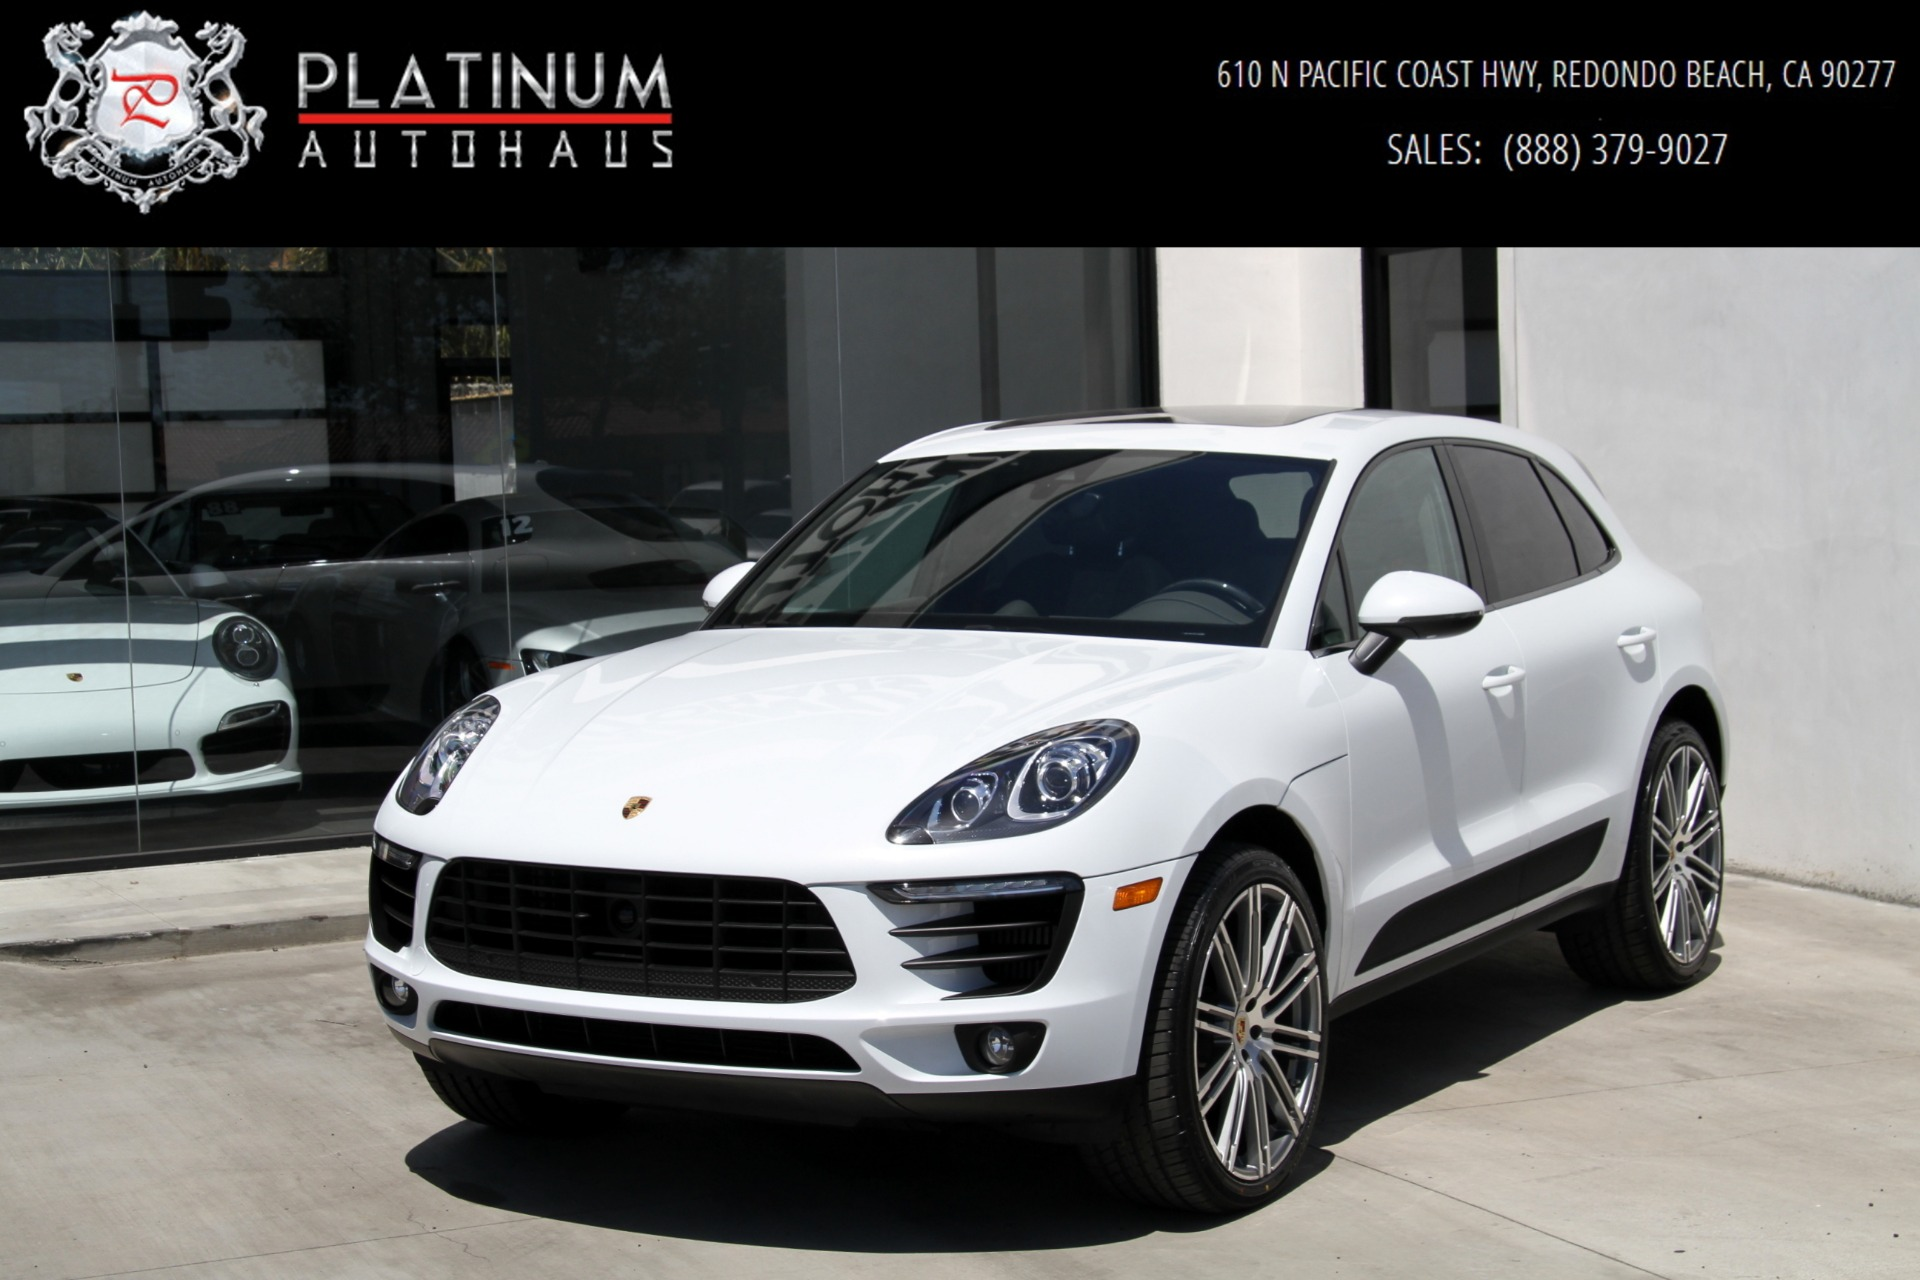 2017 Porsche Macan S Stock 6192 For Sale Near Redondo